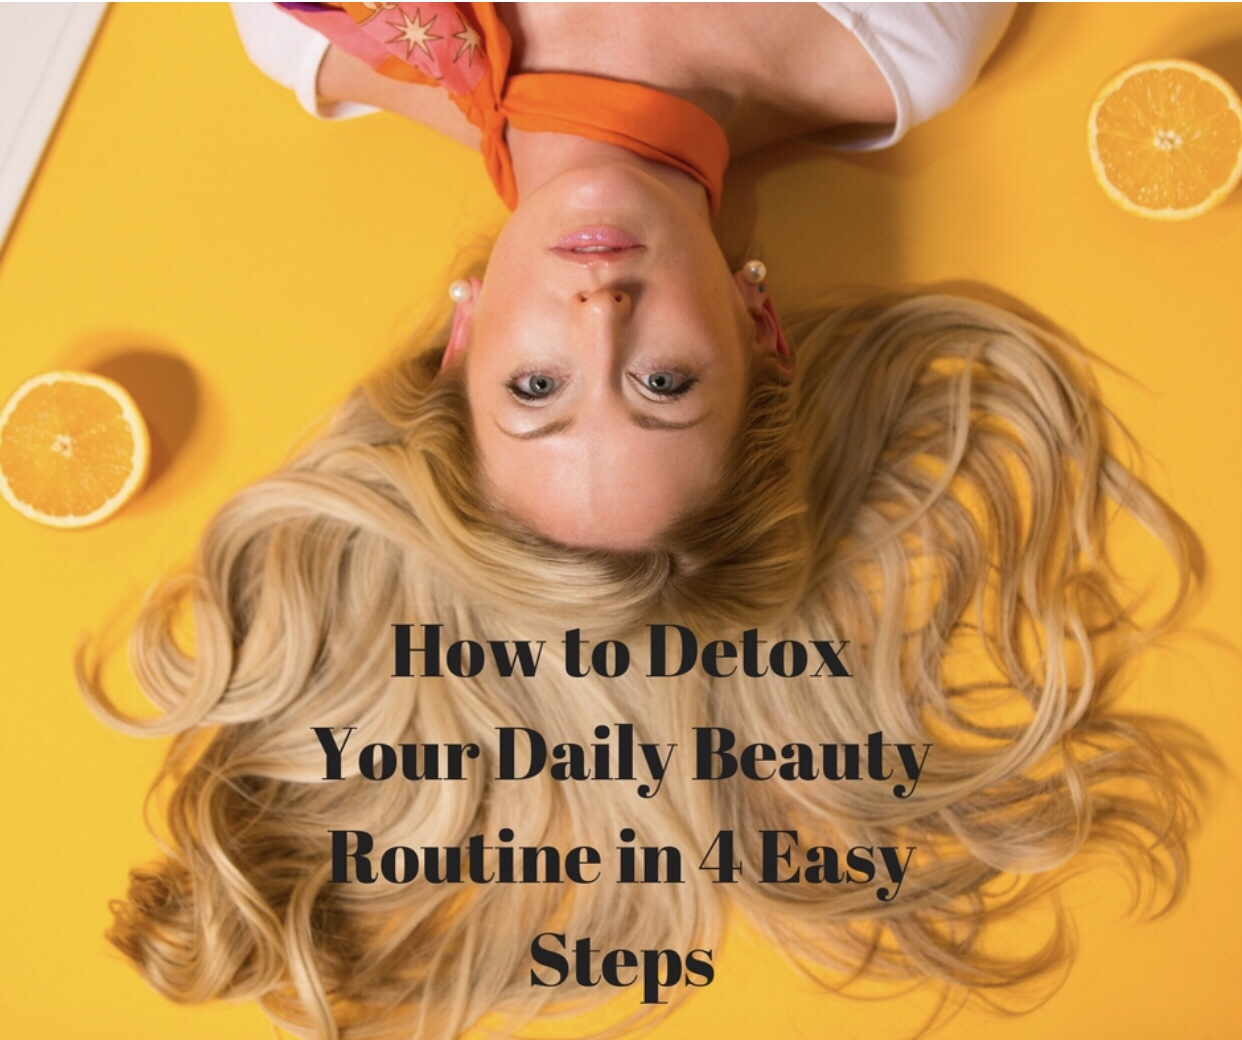 How to detox your daily beauty routine in 4 easy steps – guest blog article by Amy Mia Goldsmith